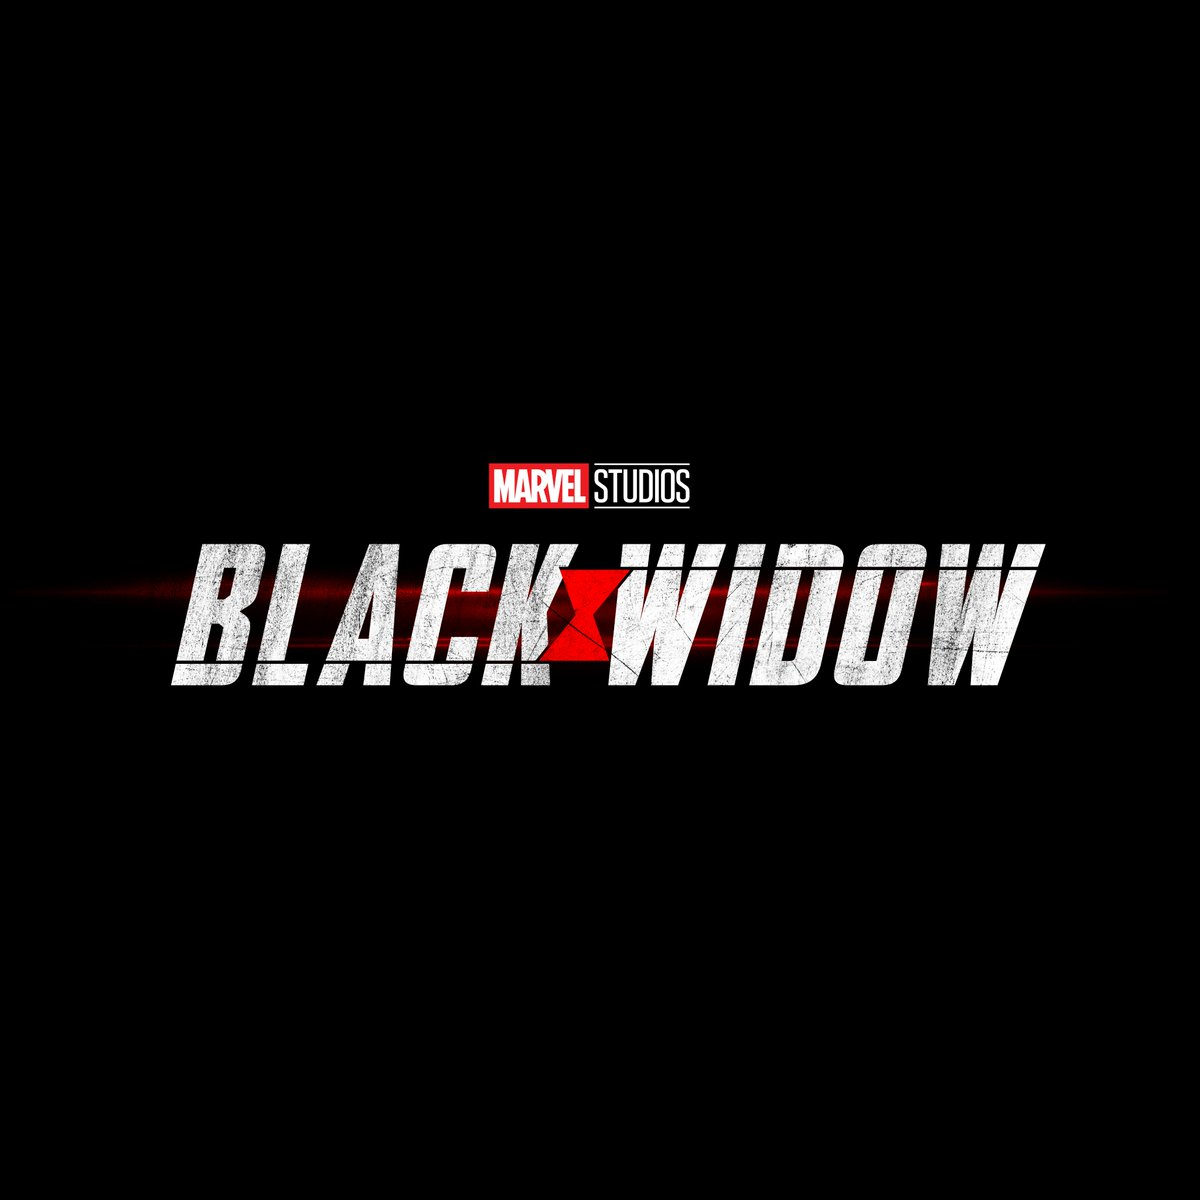 Viúva Negra (Black Widow da Marvel Studios).